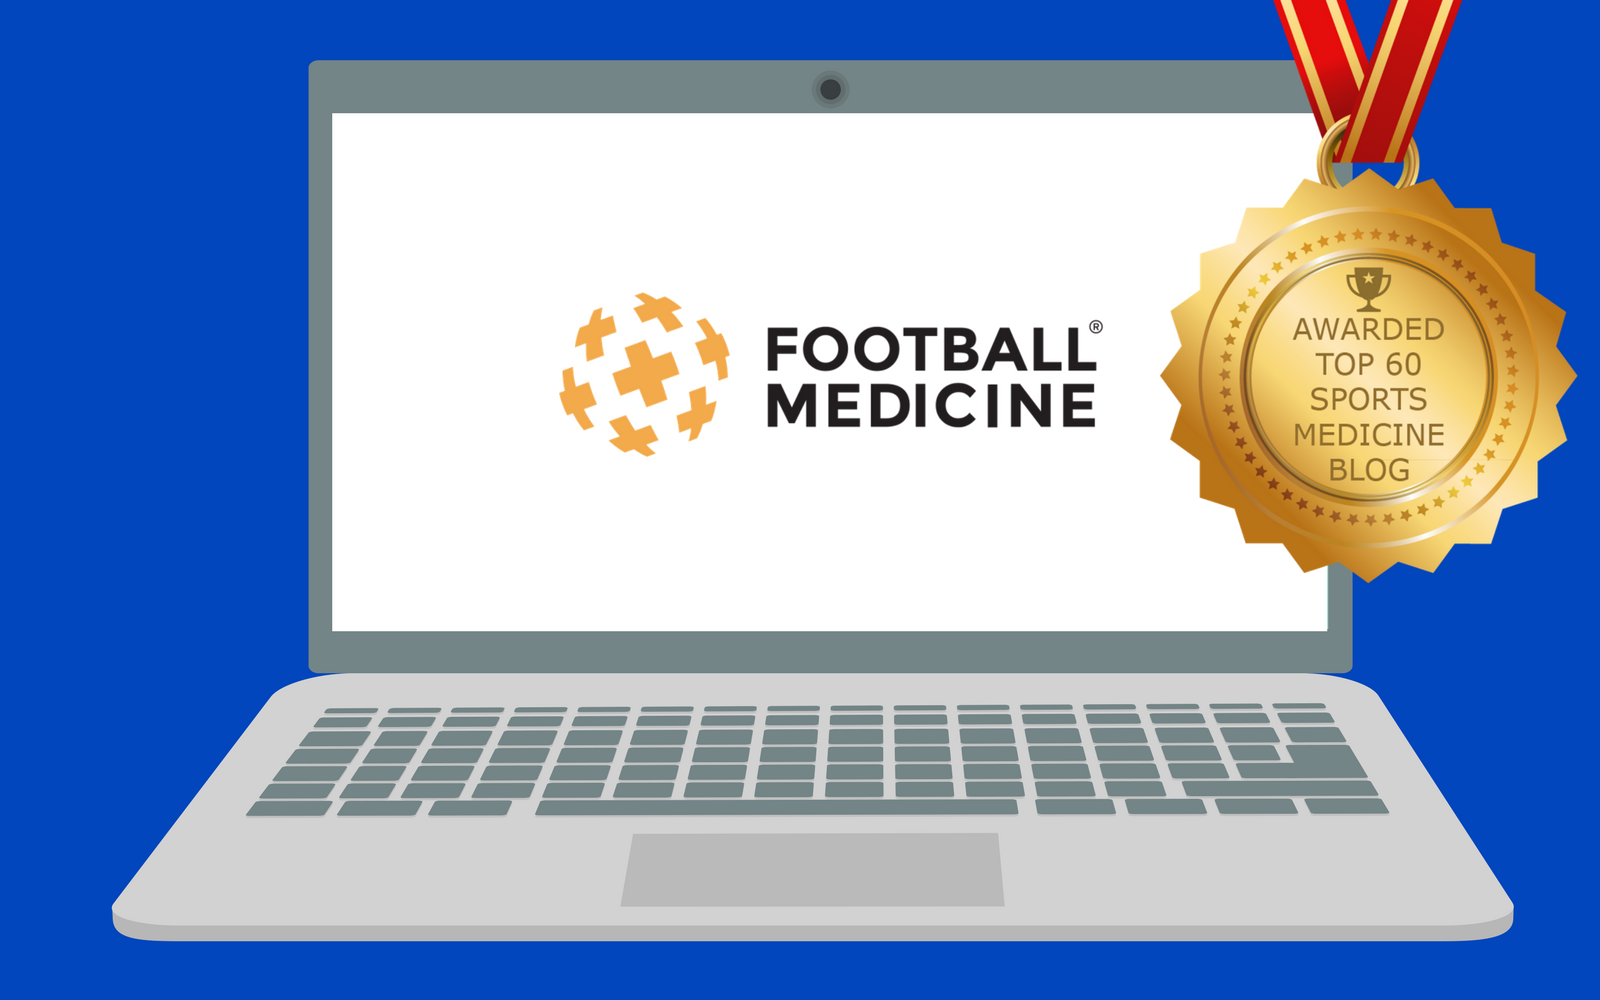 Football Medicine: one of the top medicine blogs worldwide!